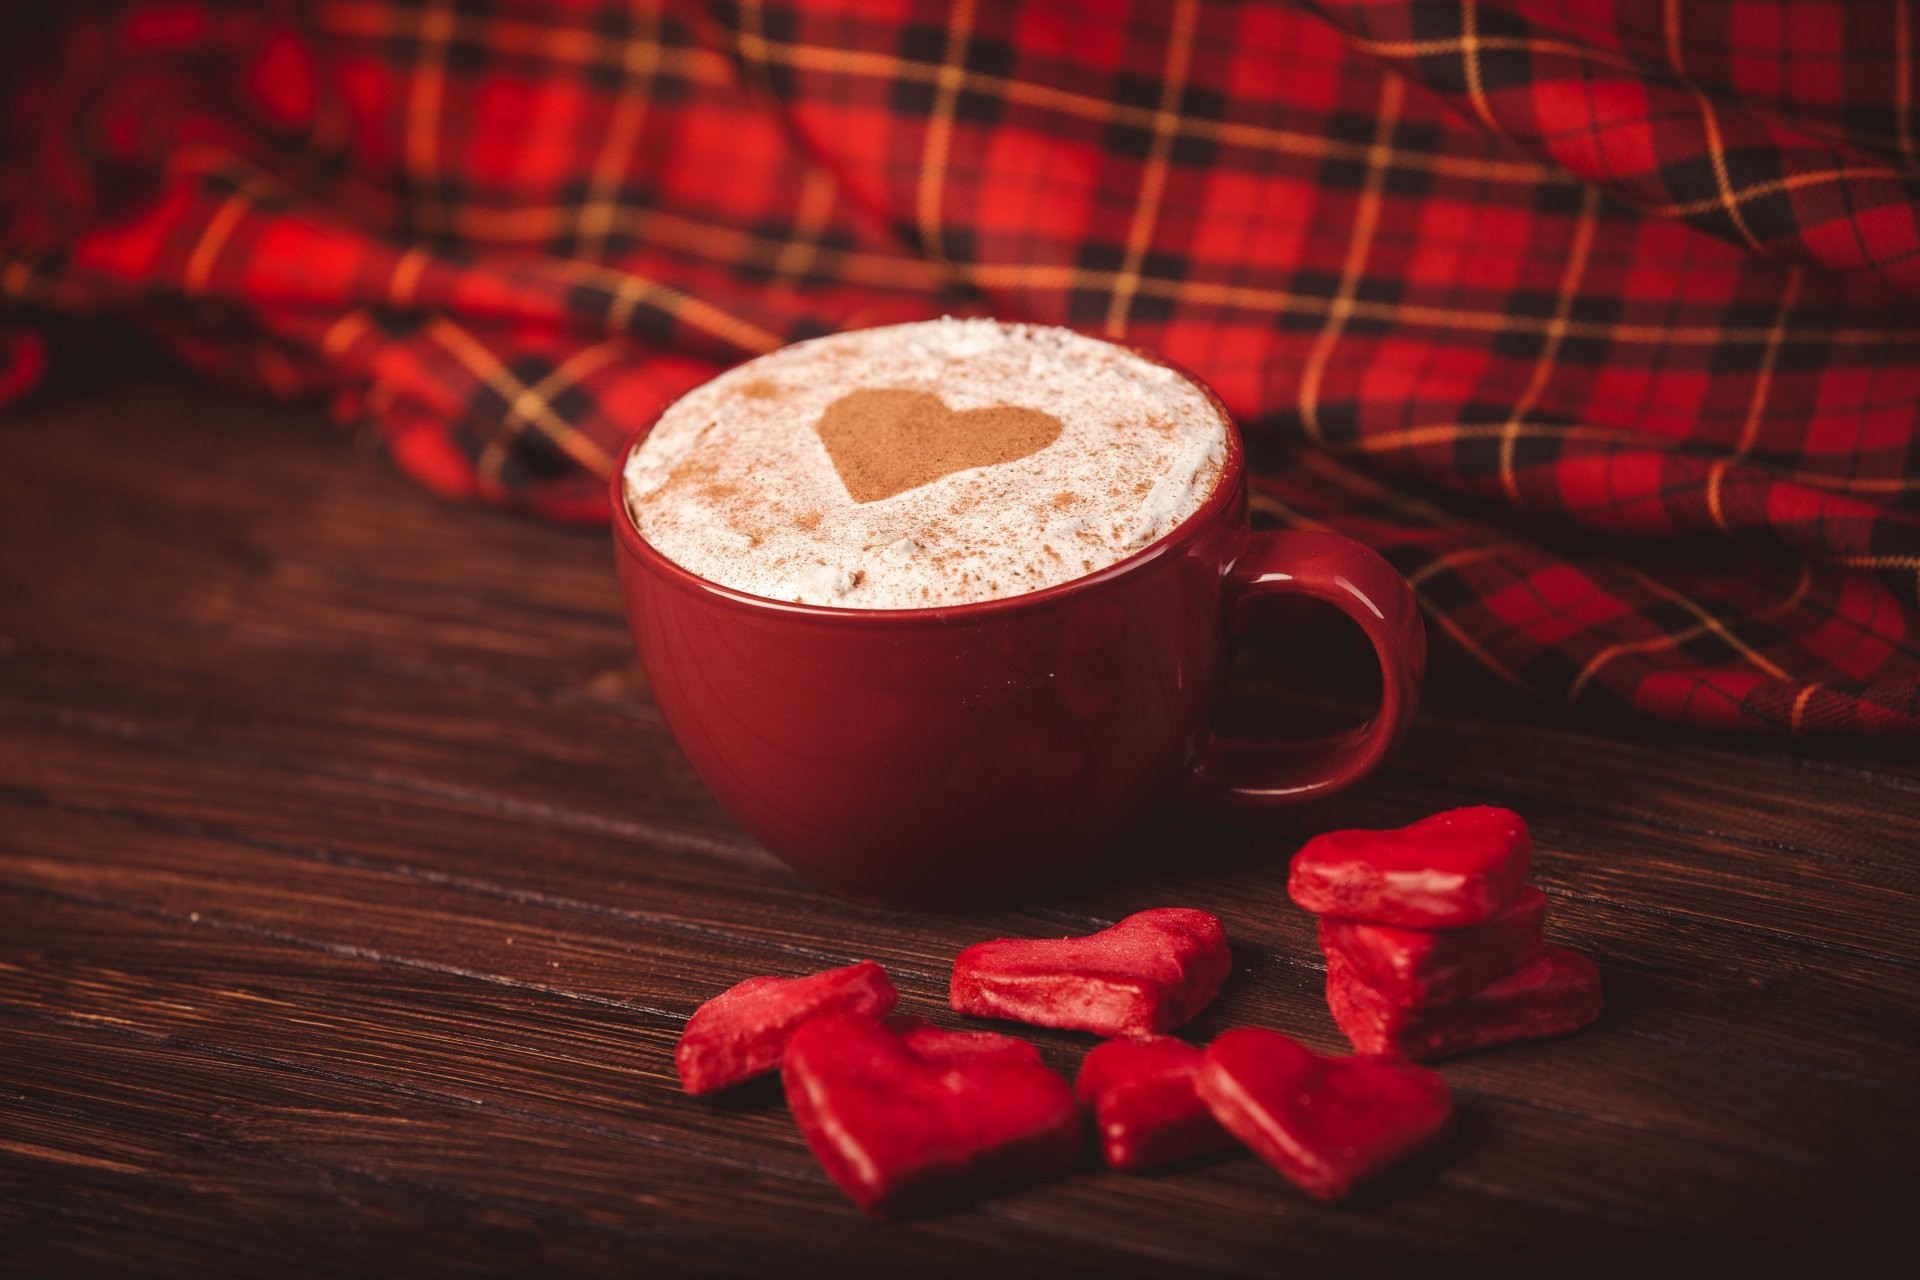 1920x1280 candy heart heart red cappuccino coffee cup red napkin